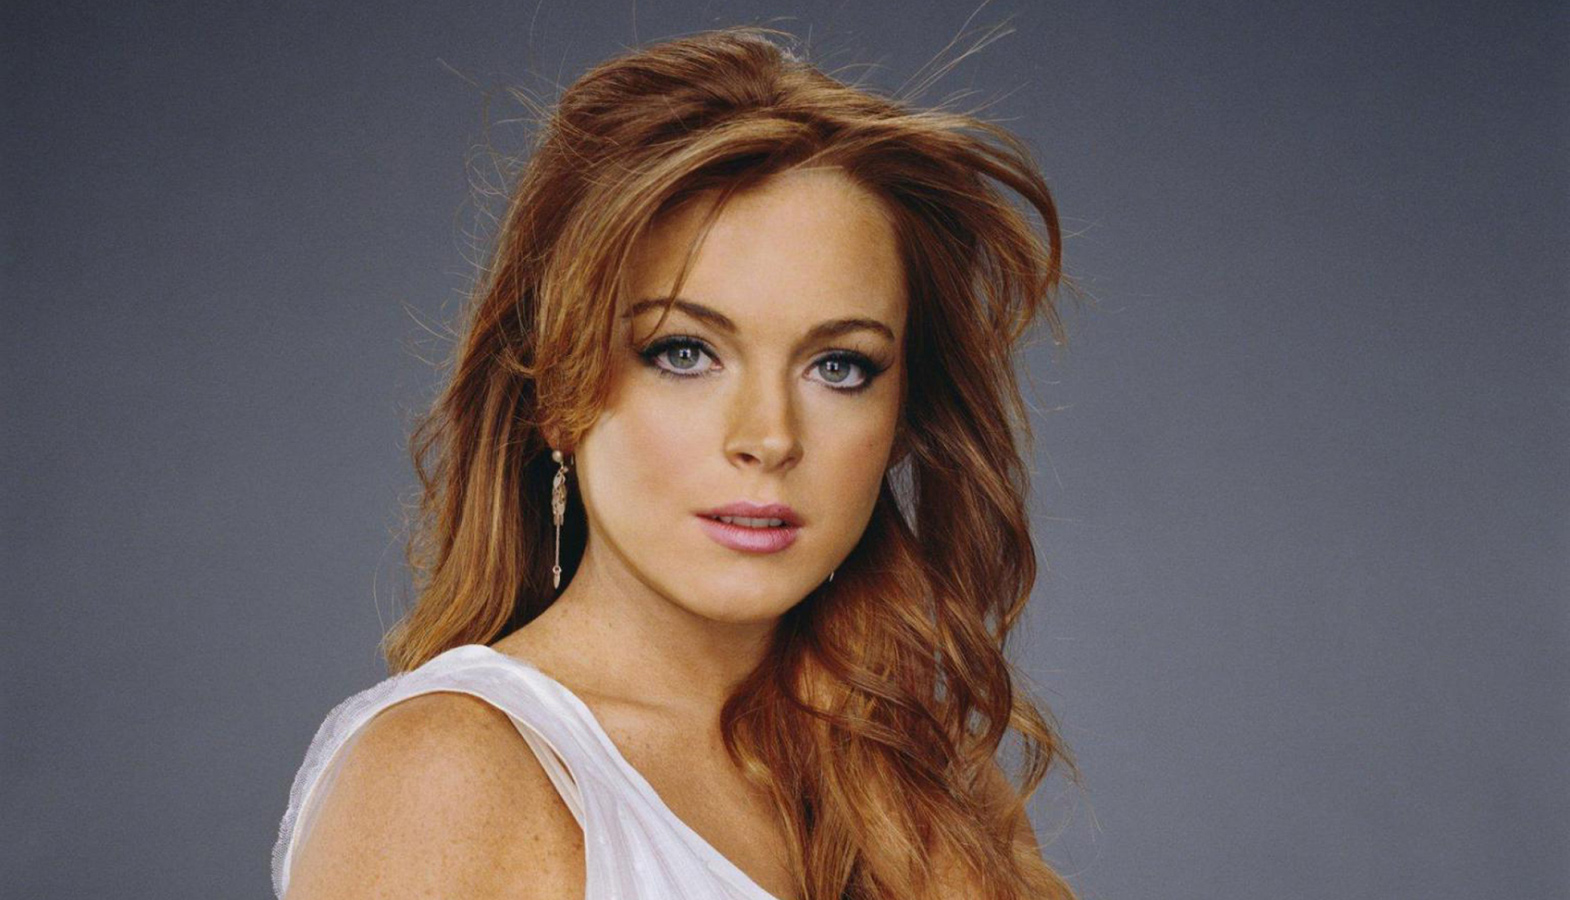 Lindsay Lohan Owes $365,000 For A Book She Never Wrote